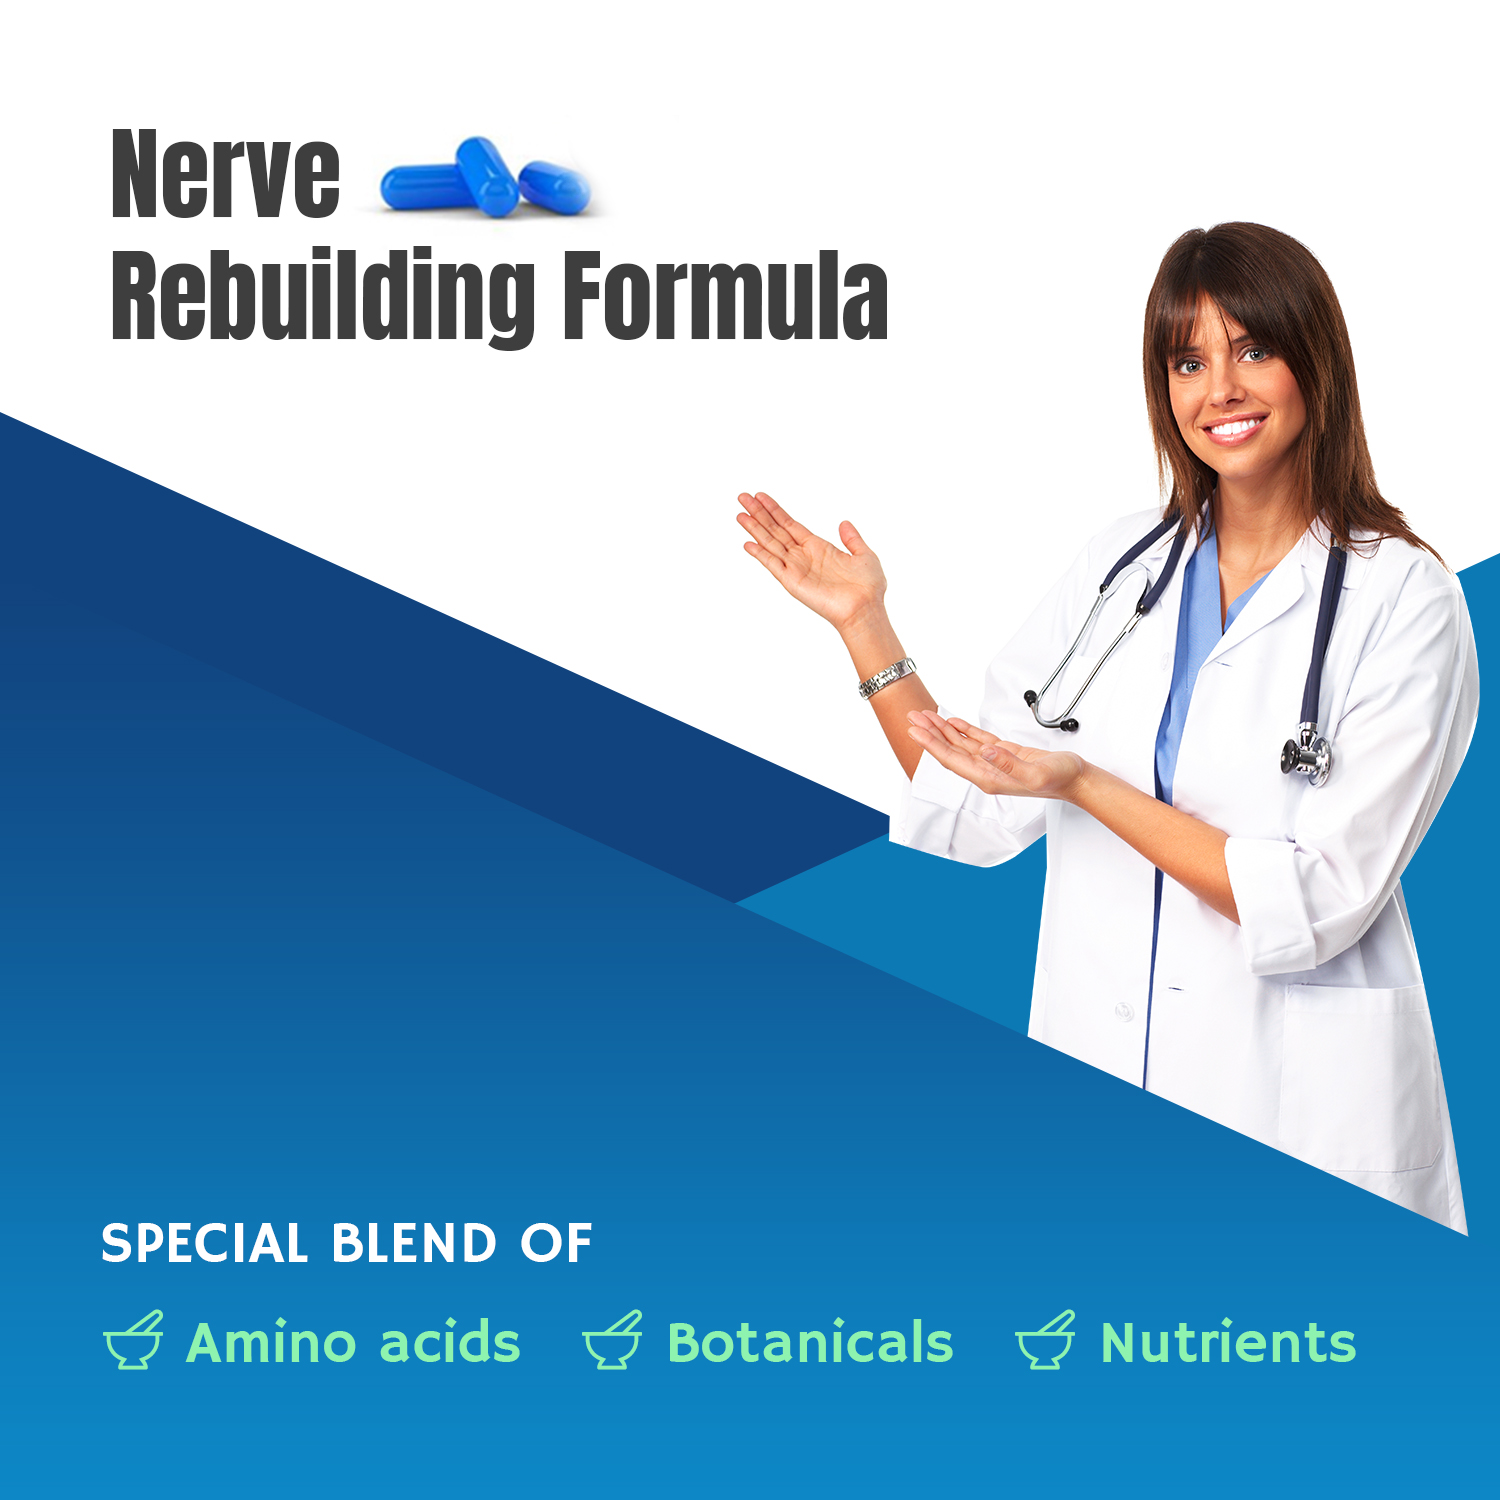 Neuropathy Support Supplement - Nerve Pain Support - Nitric Oxide/L-Arginine for Peripheral Neuropathy - Feet Hand Legs Toe Maximum Strength Nerve Renew Repair Support Formula 120 Caps